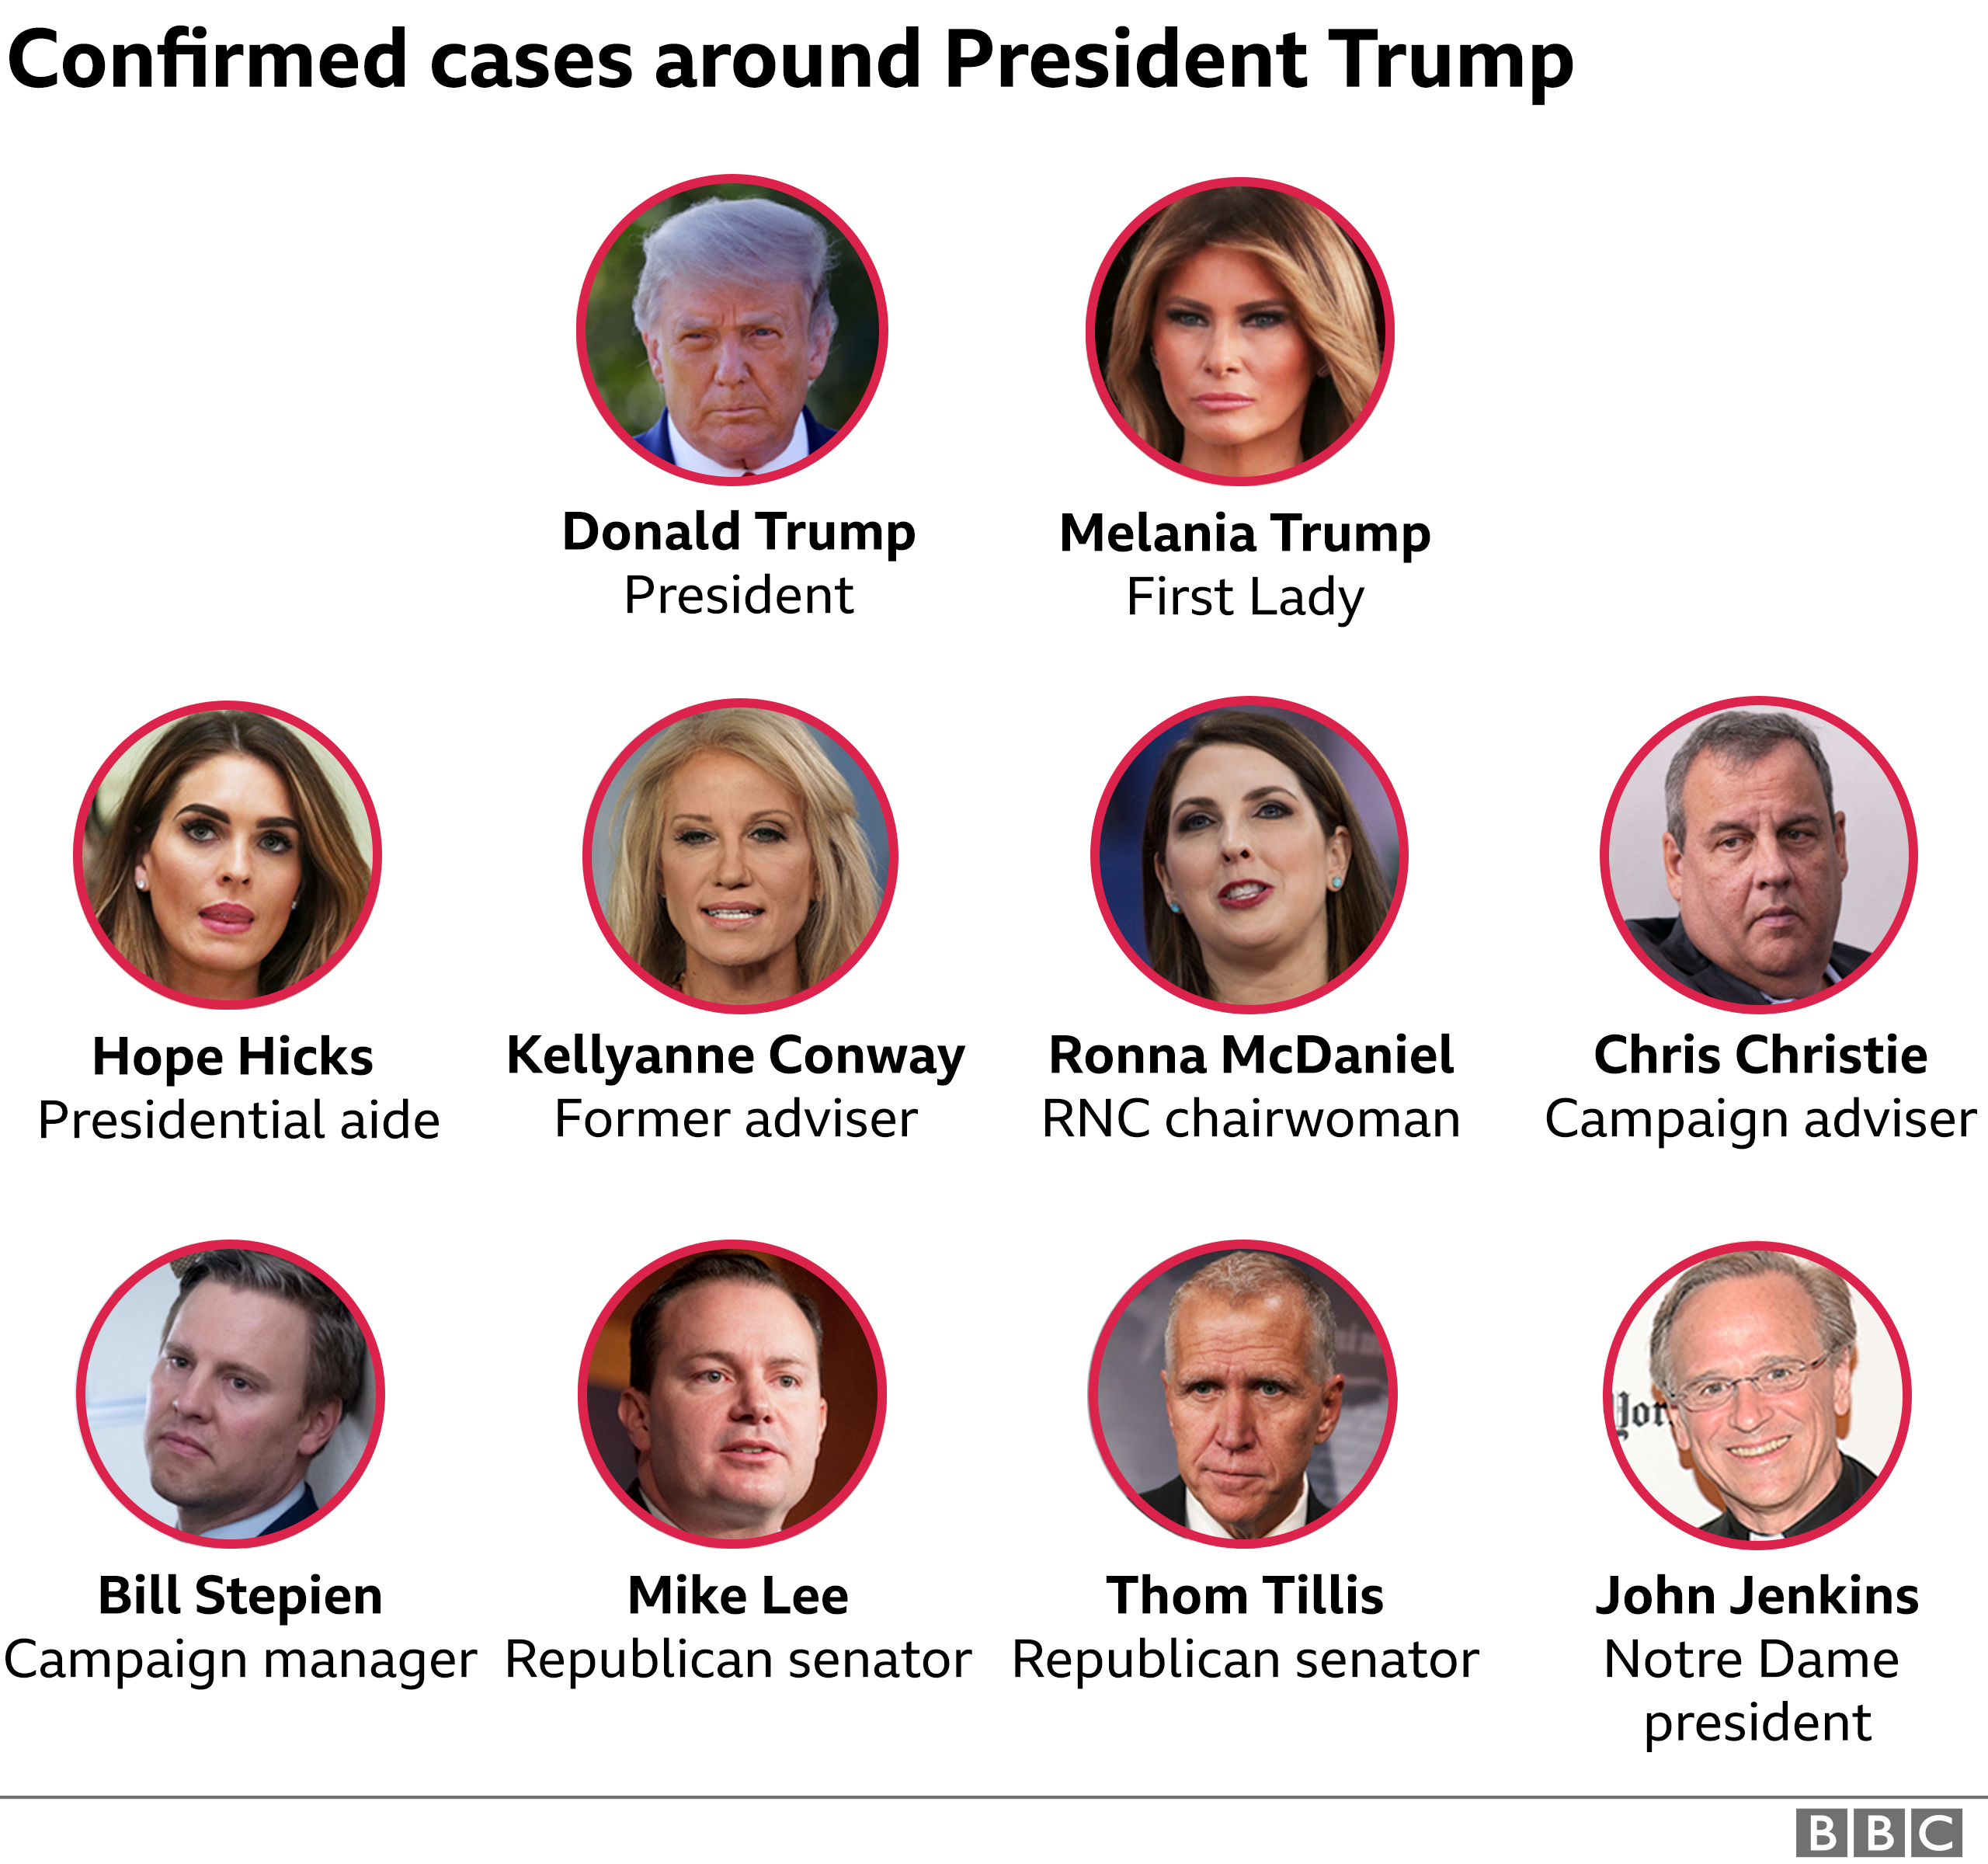 Graphic showing confirmed cases around the president